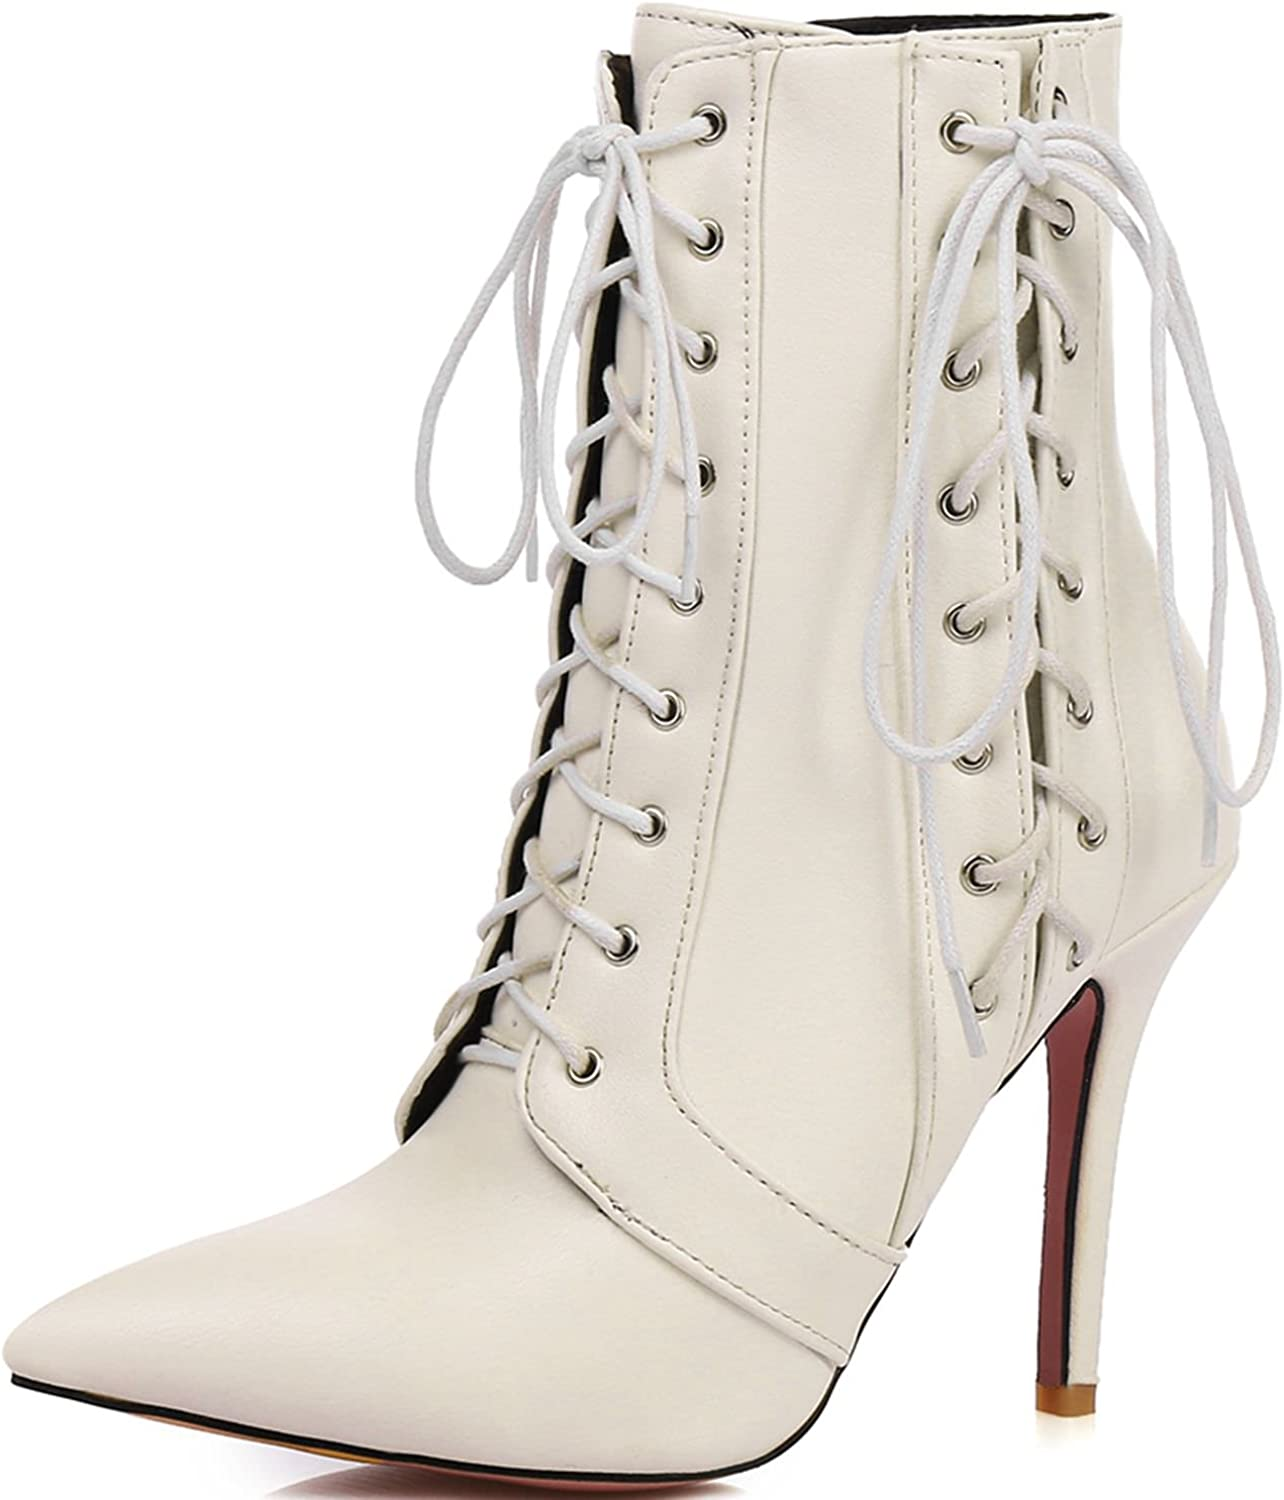 KingRover Women's High Heel Combat Pointed Toe Corset Lace Up Zipper Dressy, Formal, Party Ankle Bootie